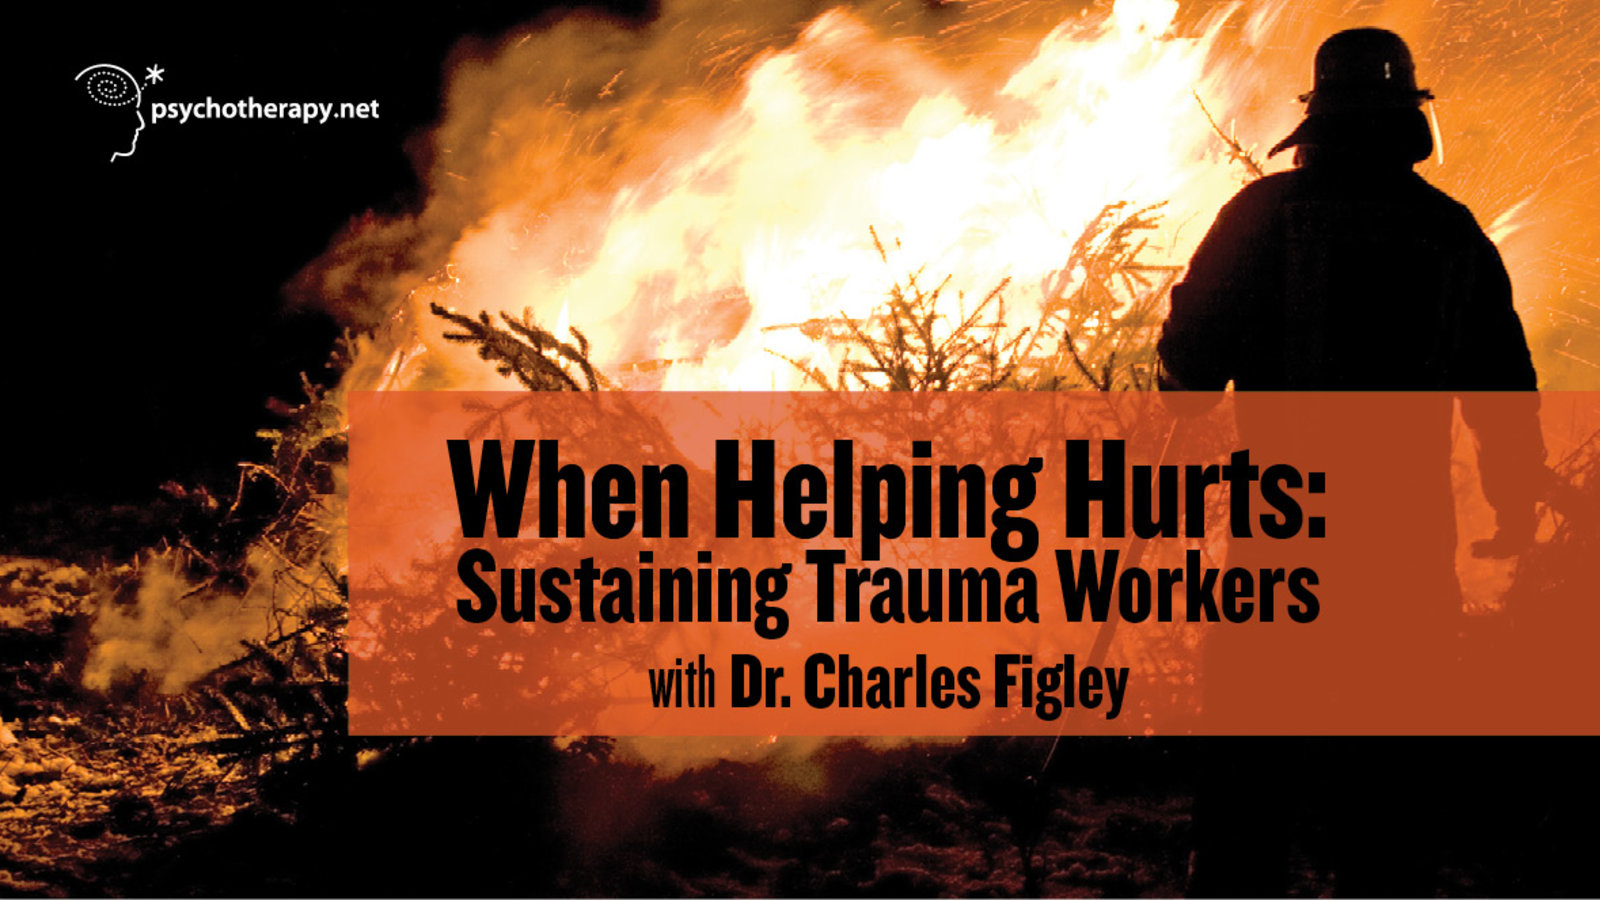 When Helping Hurts - Sustaining Trauma Workers